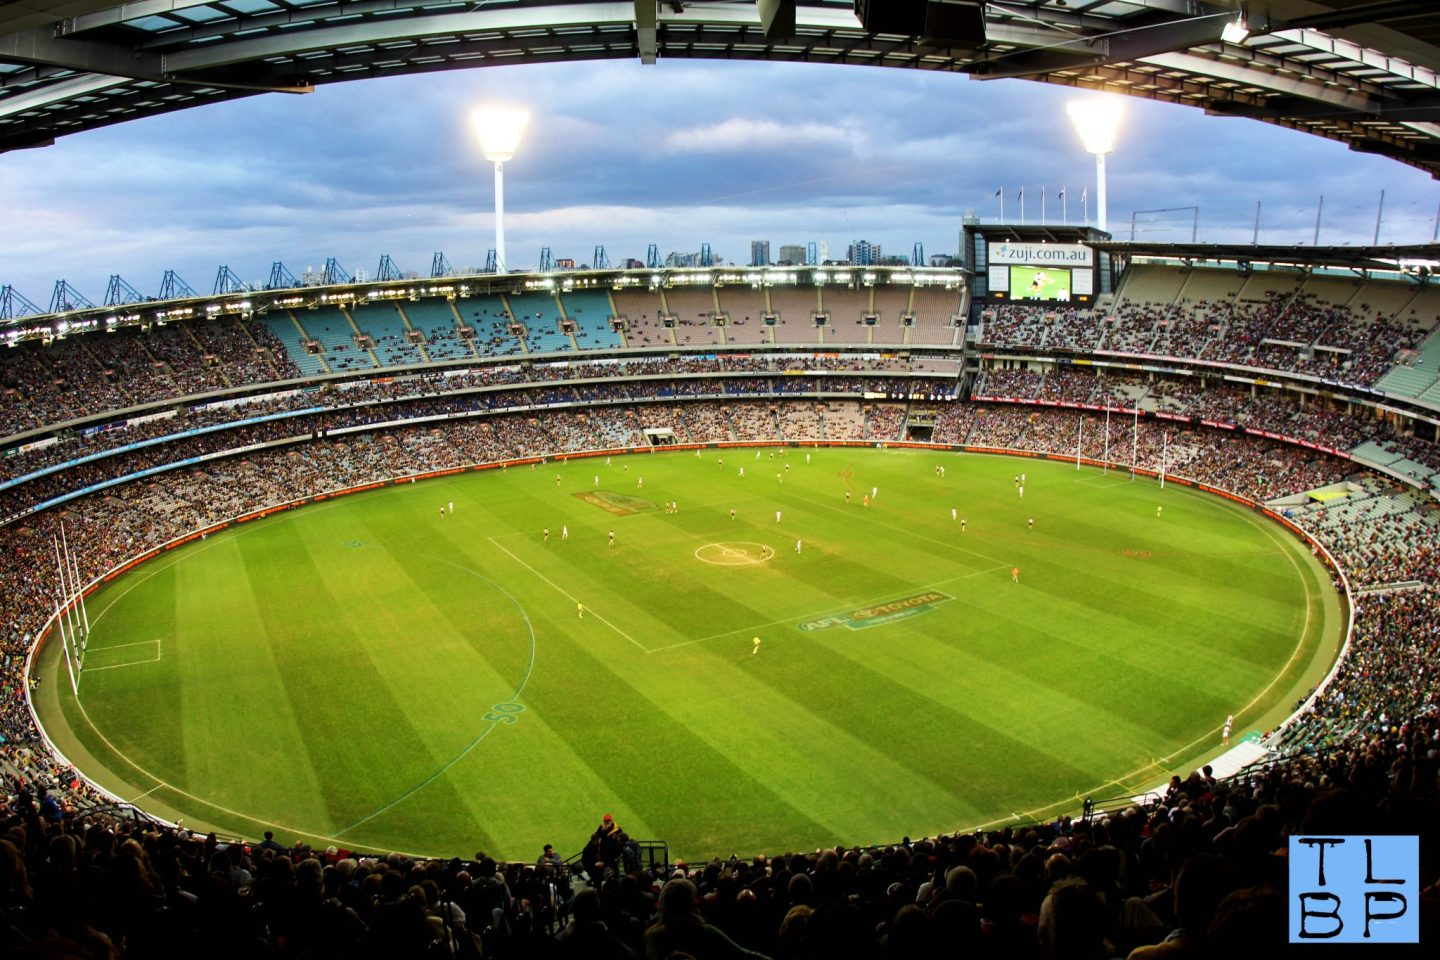 Things To Do In Melbourne: Go To An AFL Game At The MCG